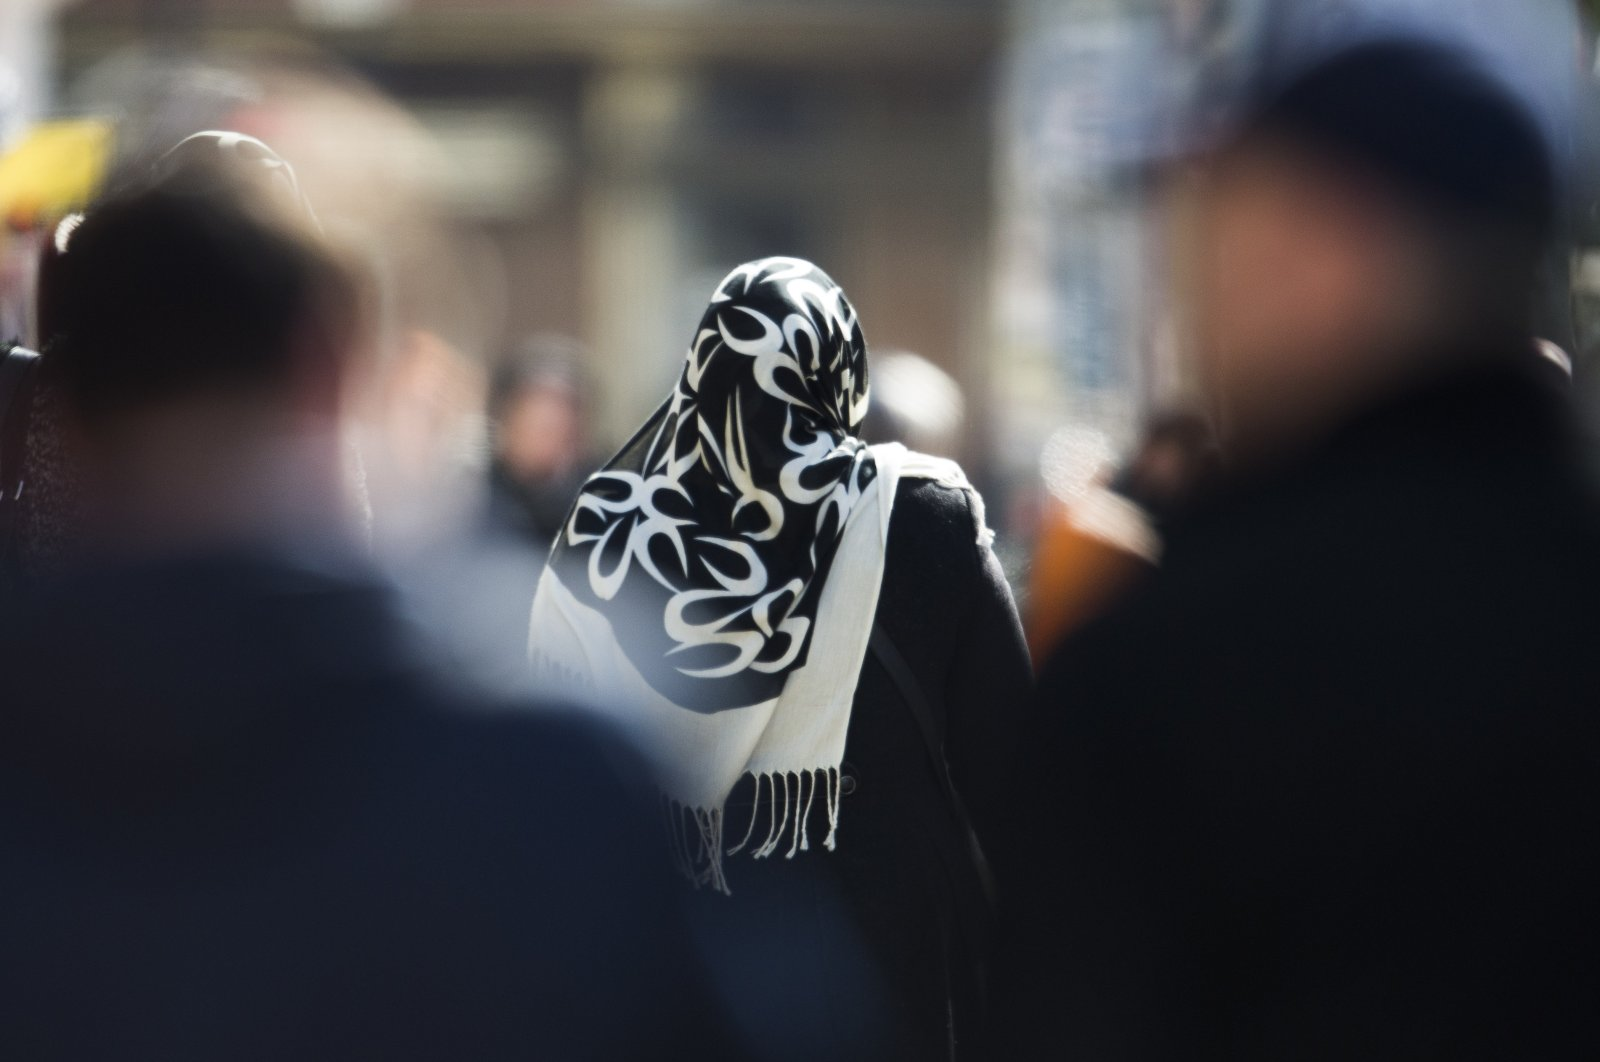 EU court allows companies to ban Muslim women from wearing headscarves at work